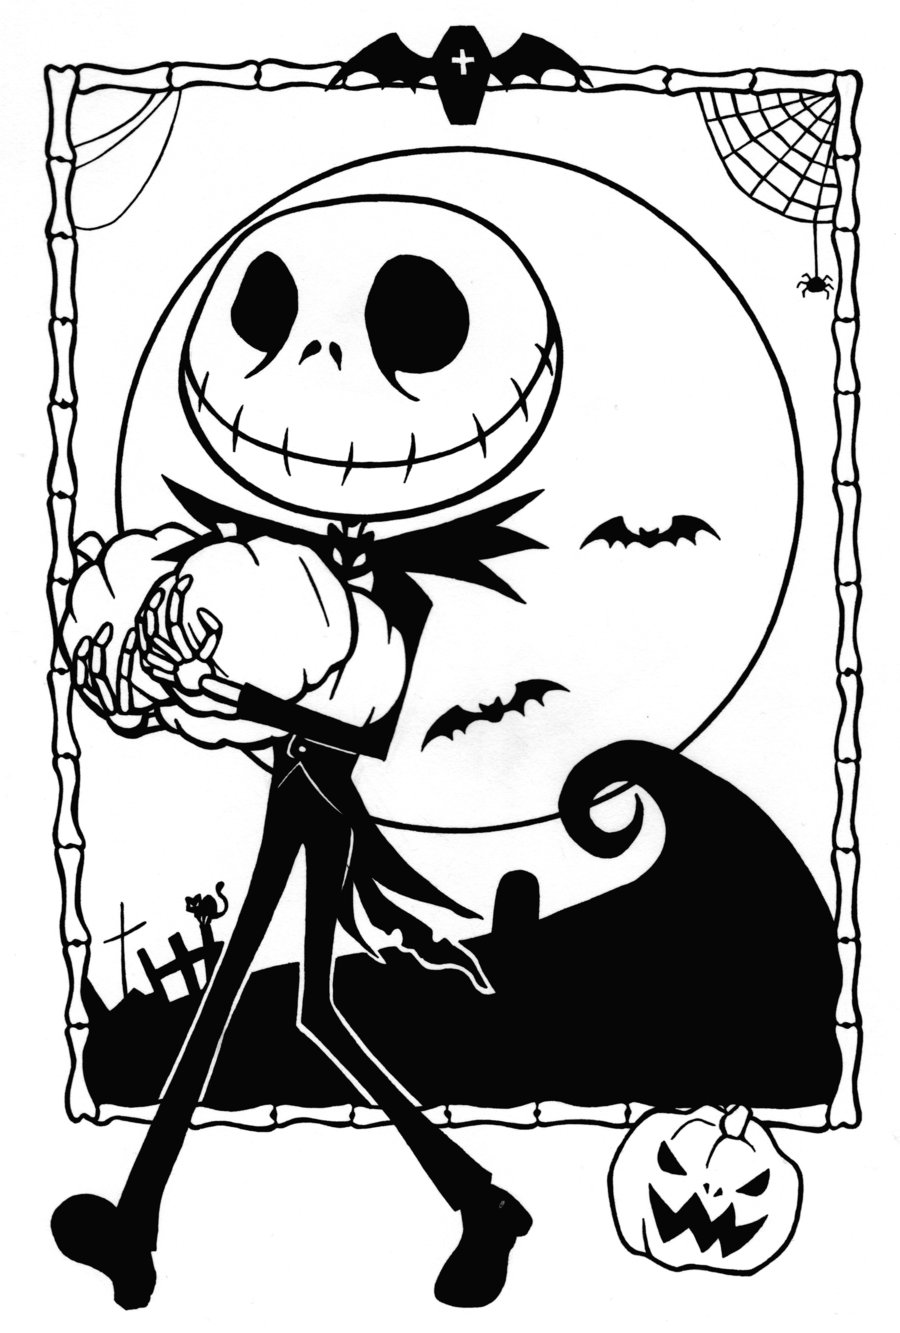 free printable nightmare before christmas coloring pages best coloring pages for kids. Black Bedroom Furniture Sets. Home Design Ideas